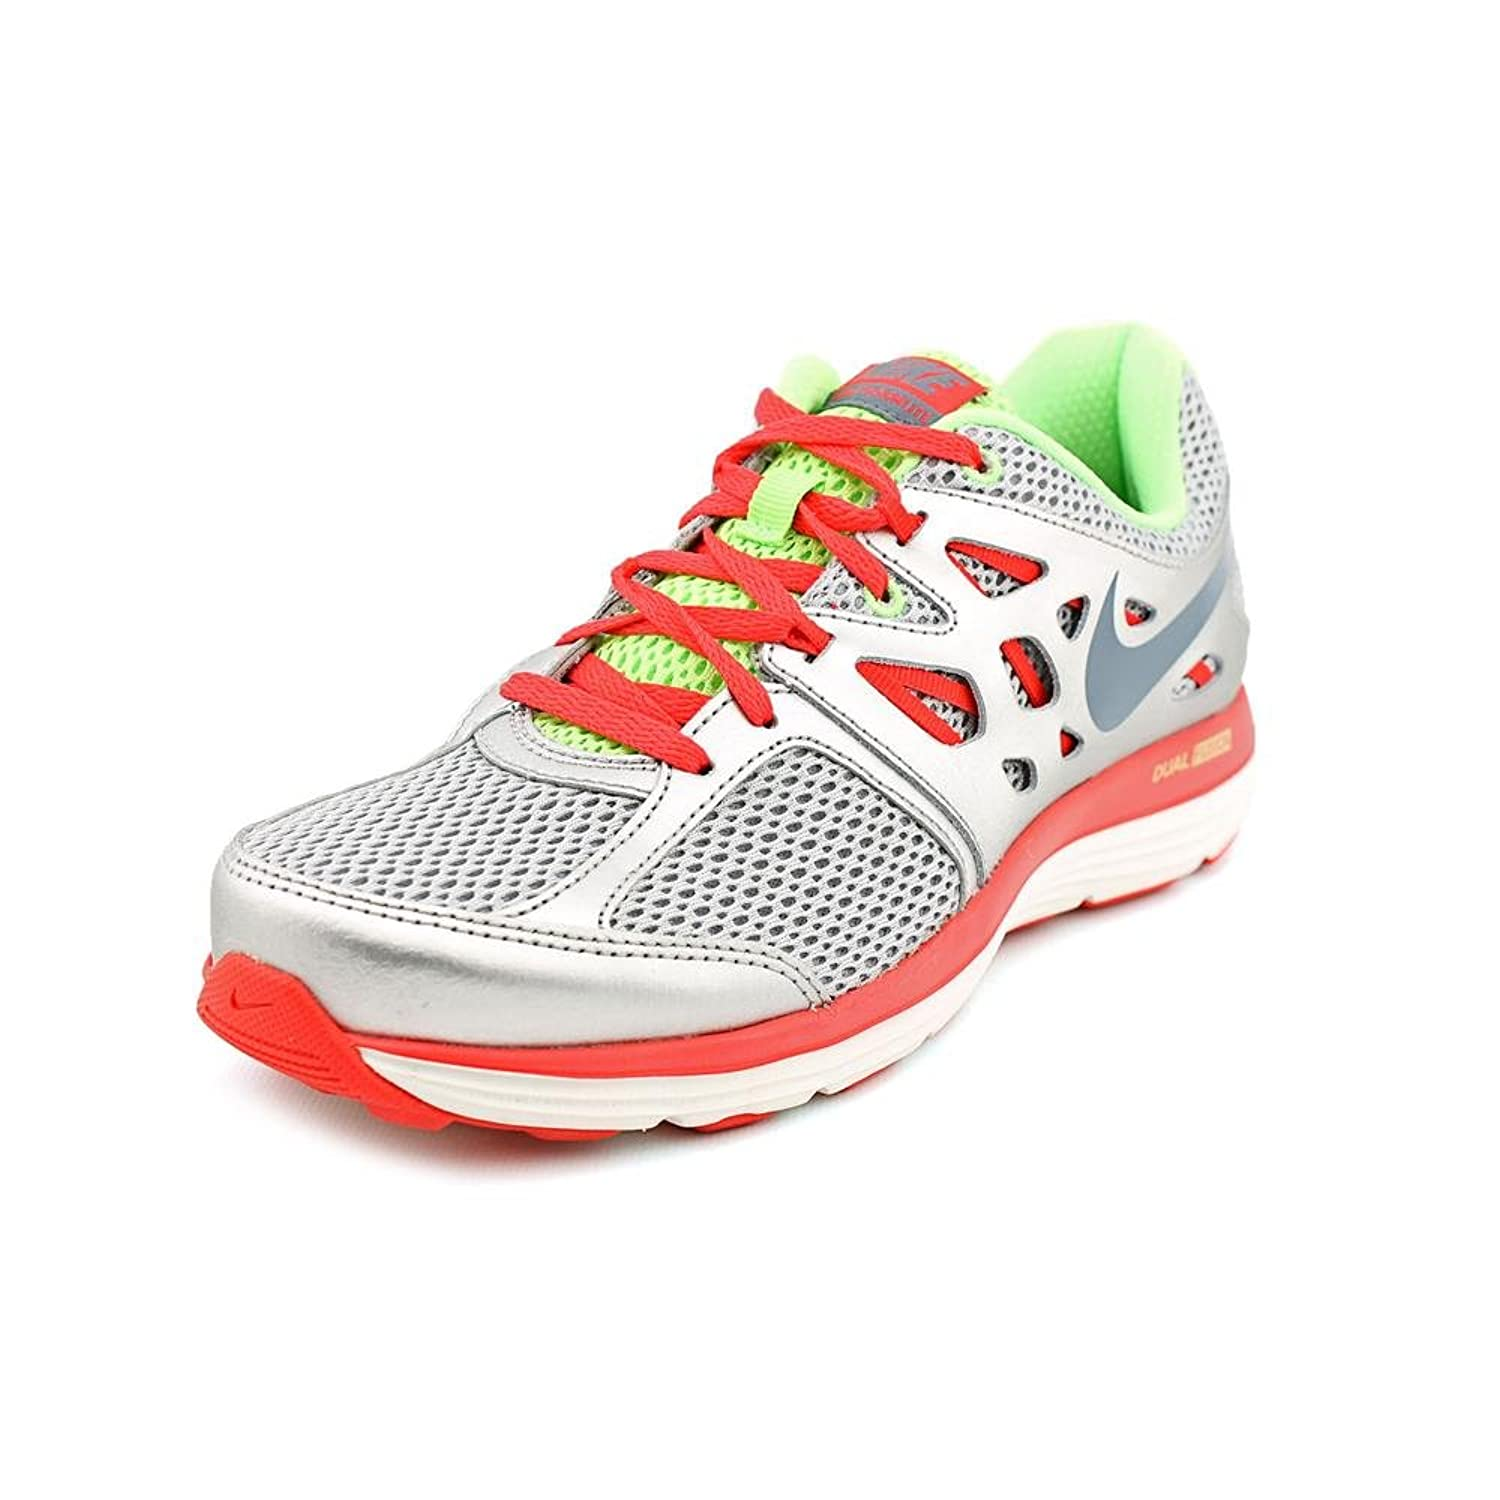 Images for Nike Women's Dual Fusion Lite 599560-001 Running Shoe Size 6